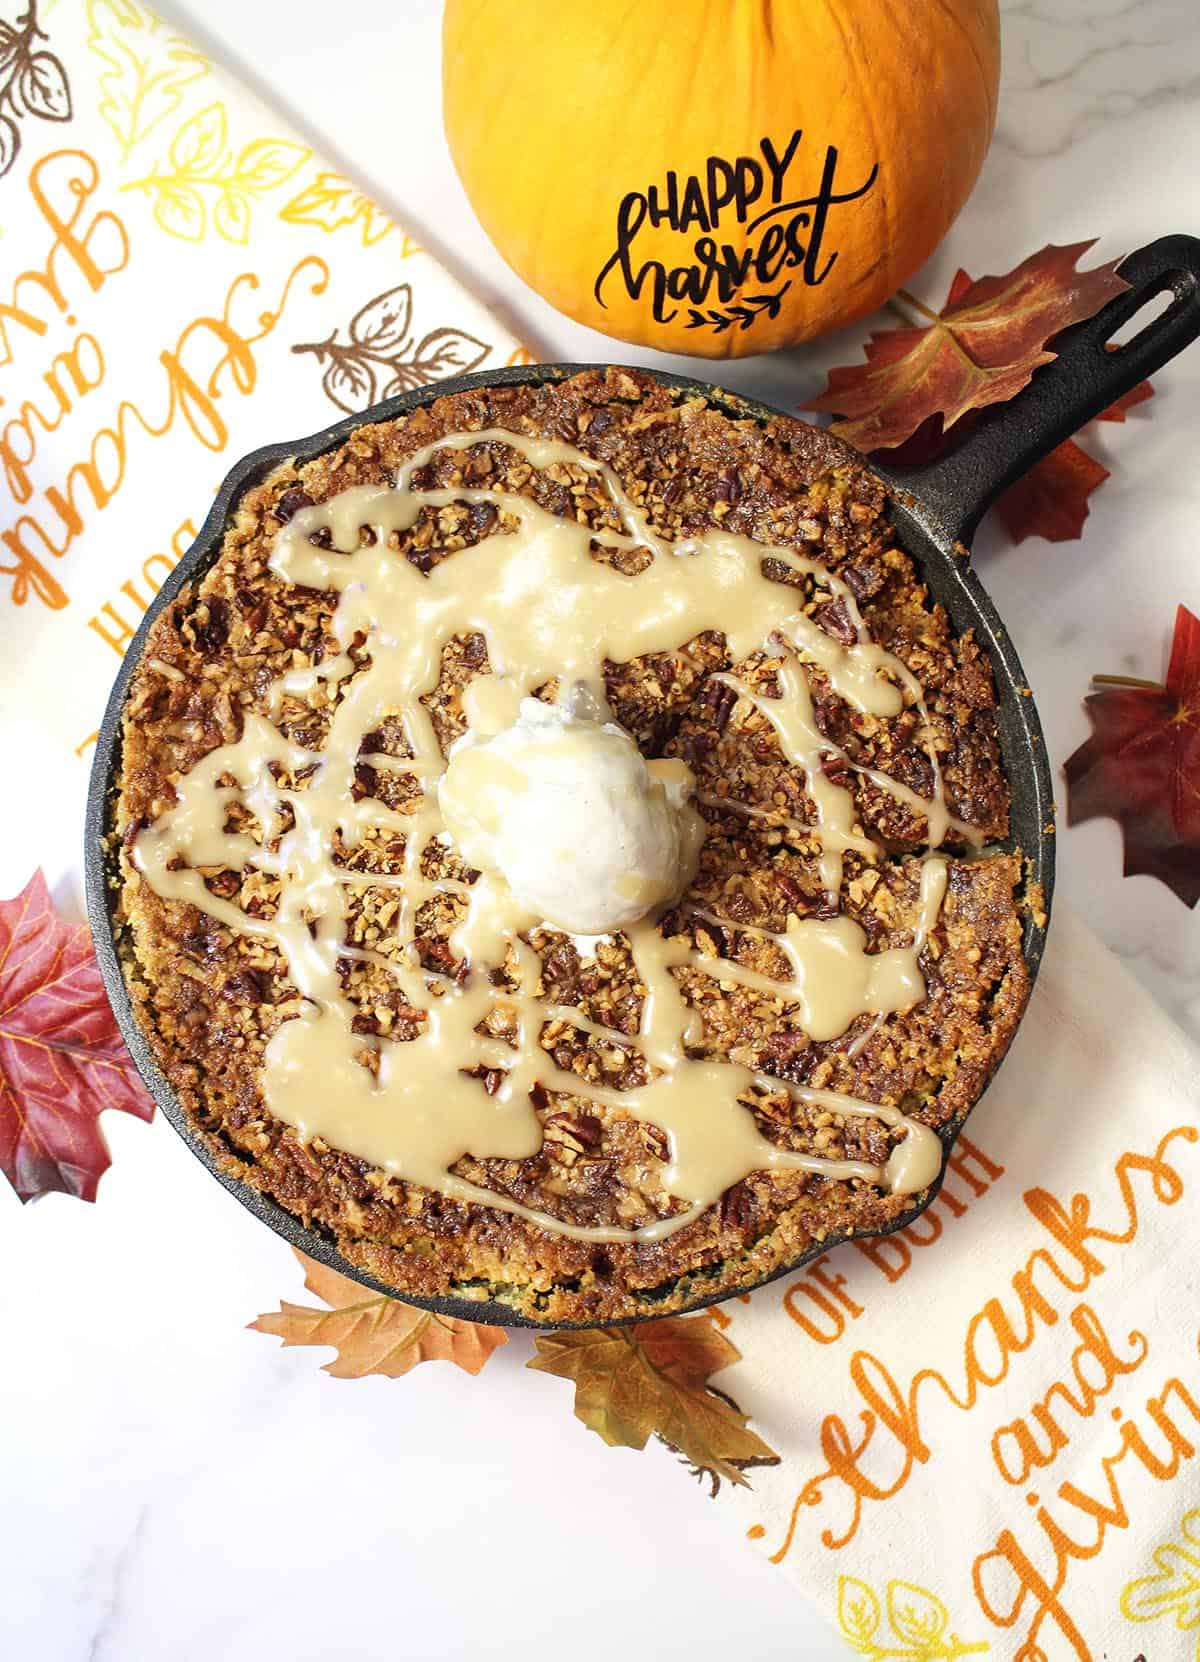 Overhead of baked pumpkin cobbler with scoop of ice cream on top and drizzle of maple sauce.